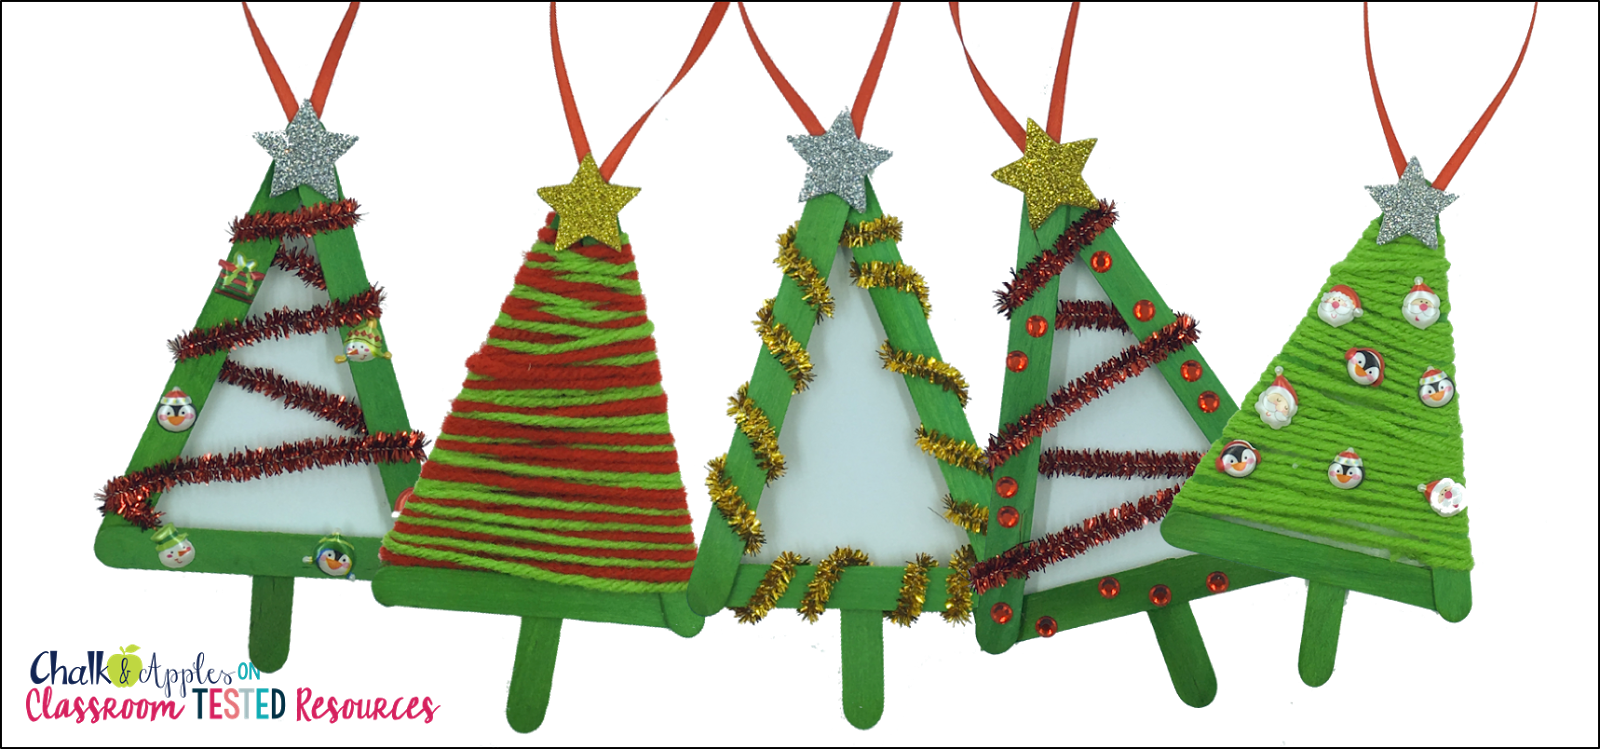 Popsicle Stick Christmas Tree Ornaments.4 Easy Popsicle Stick Christmas Ornaments Classroom Tested